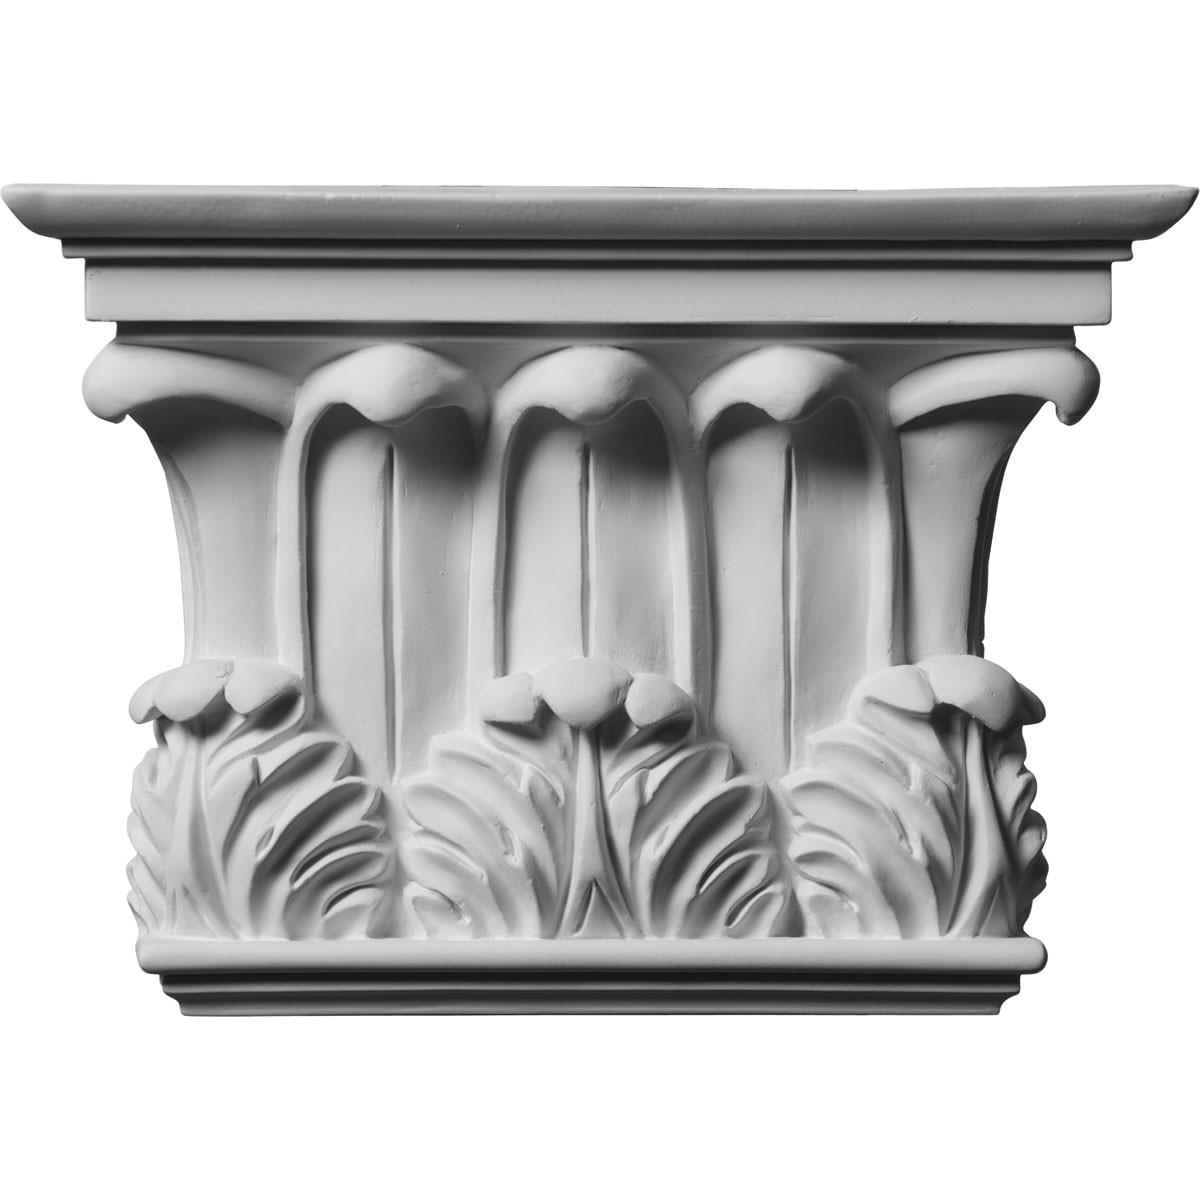 """EM-CAP11X08X03TW - 10 3/4""""W x 7 5/8""""H x 2 3/4""""P Temple of Winds Capital (Fits Pilasters up to 7 3/8""""W x 1 1/8""""D)"""